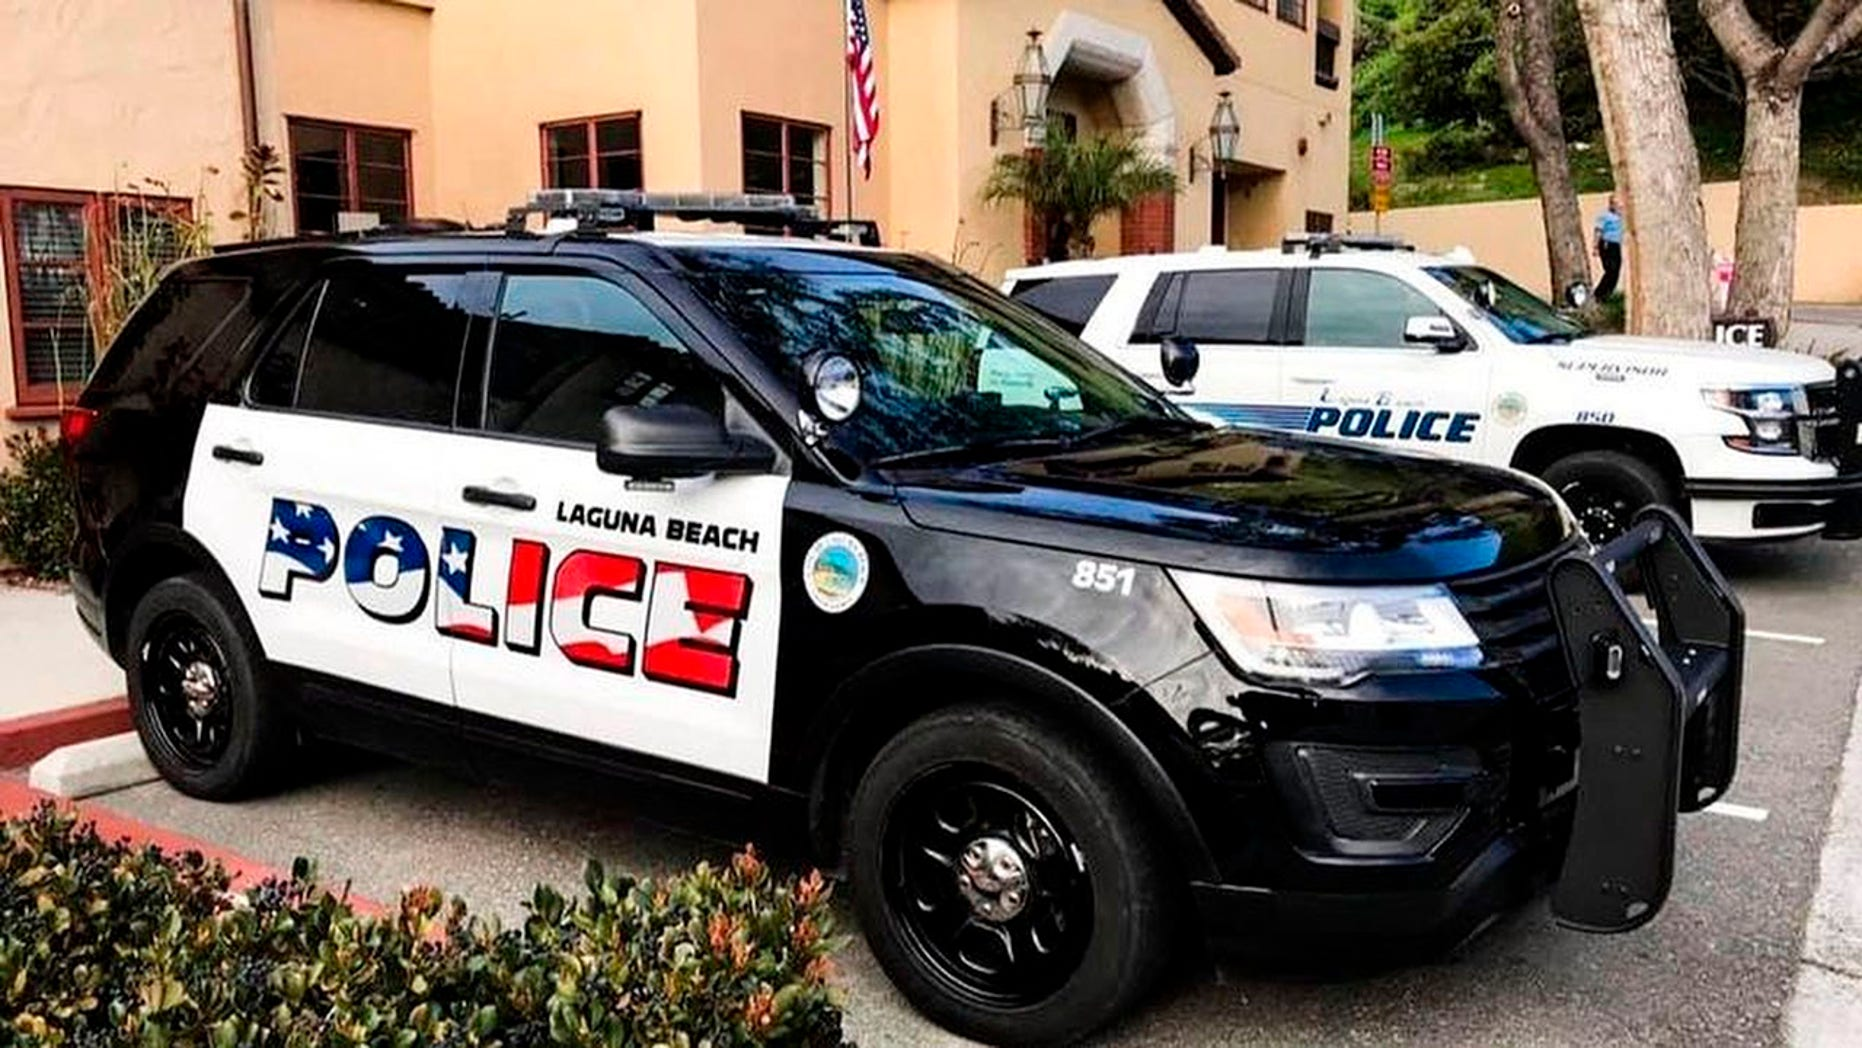 Westlake Legal Group AP19103805551971 Patriotic patrol-car lettering sparks backlash in California city fox-news/us/us-regions/west/california fox-news/us/personal-freedoms/proud-american fox-news/us/education/patriotism fox-news/us/crime/police-and-law-enforcement fox news fnc/us fnc Brie Stimson article 6c08c615-7996-5bc8-b0f7-d939fc8ee29e